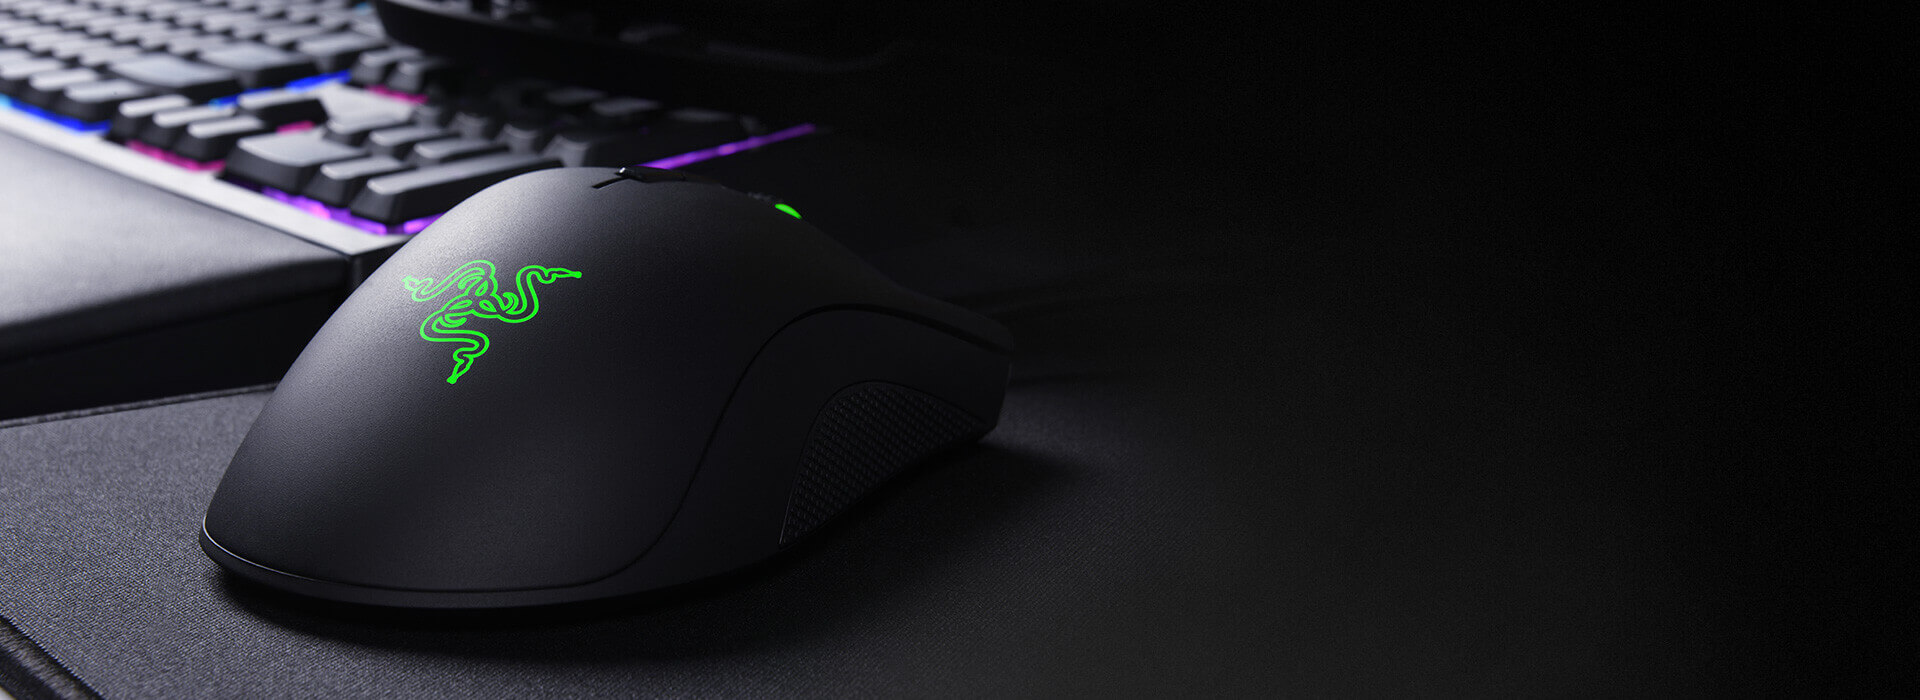 Razer Deathadder Elite Review – Best Wired Gaming Mouse